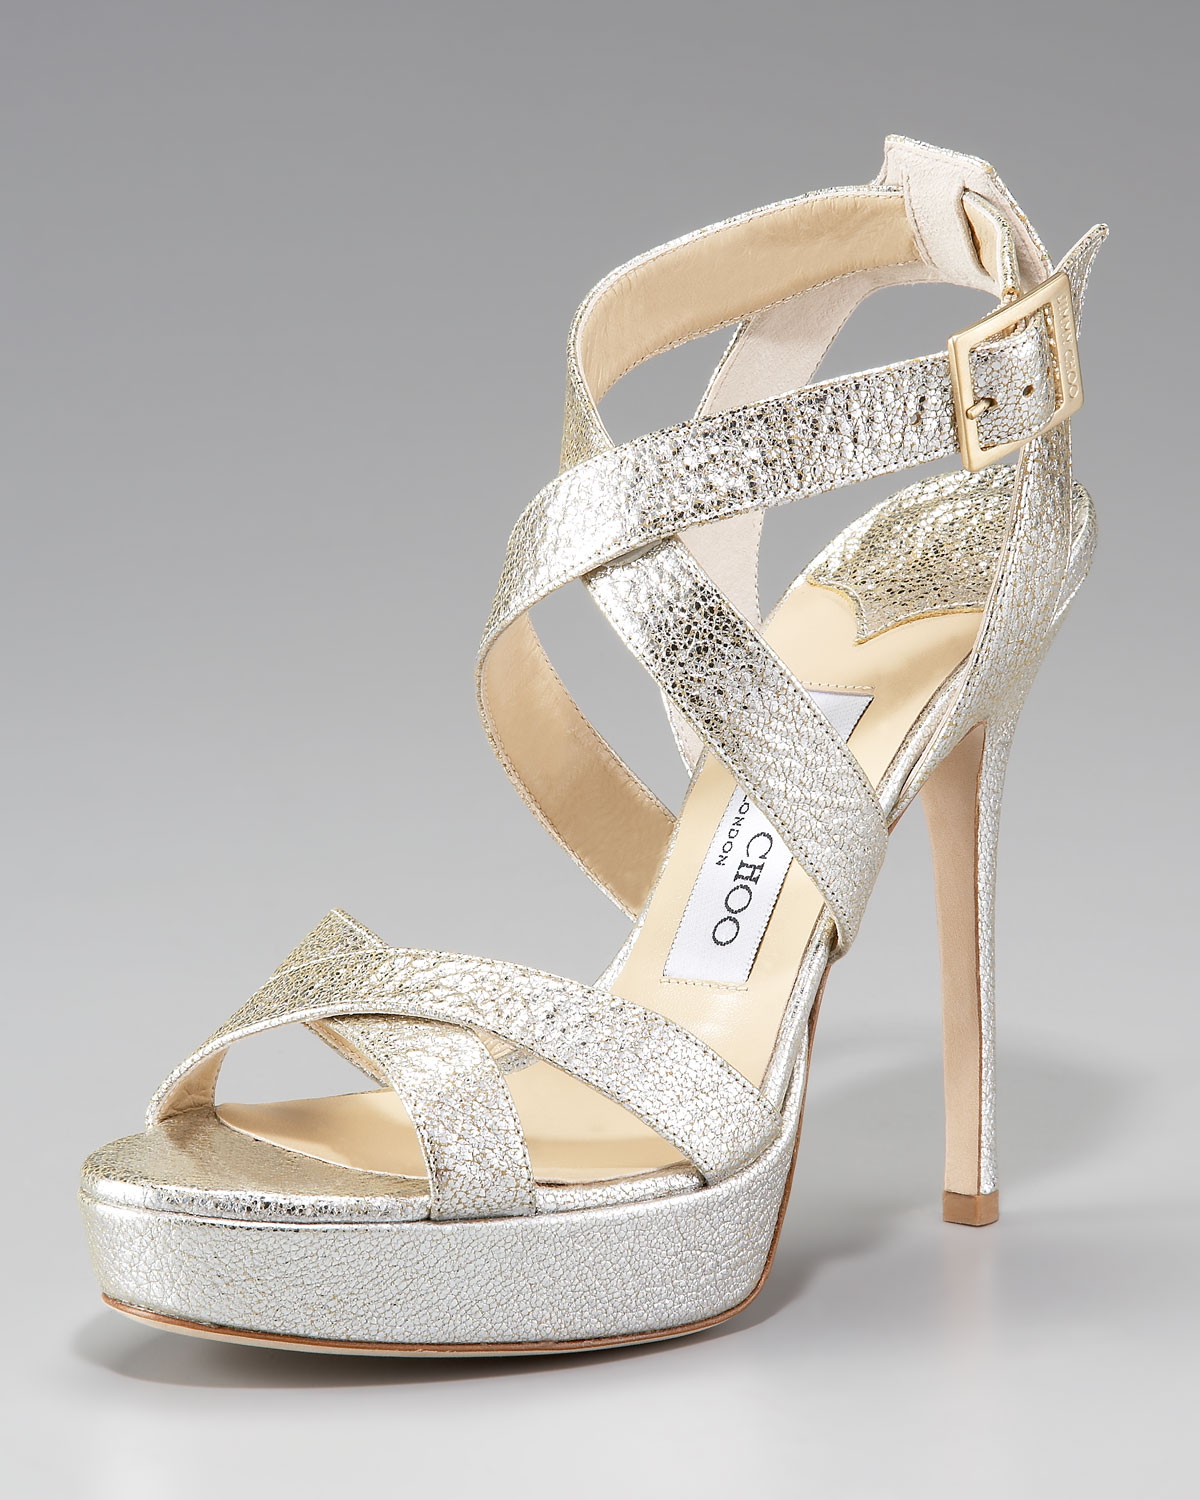 a51feb2b9d7 Lyst - Jimmy Choo Vamp Crushed Metallic Platform Sandal in Metallic